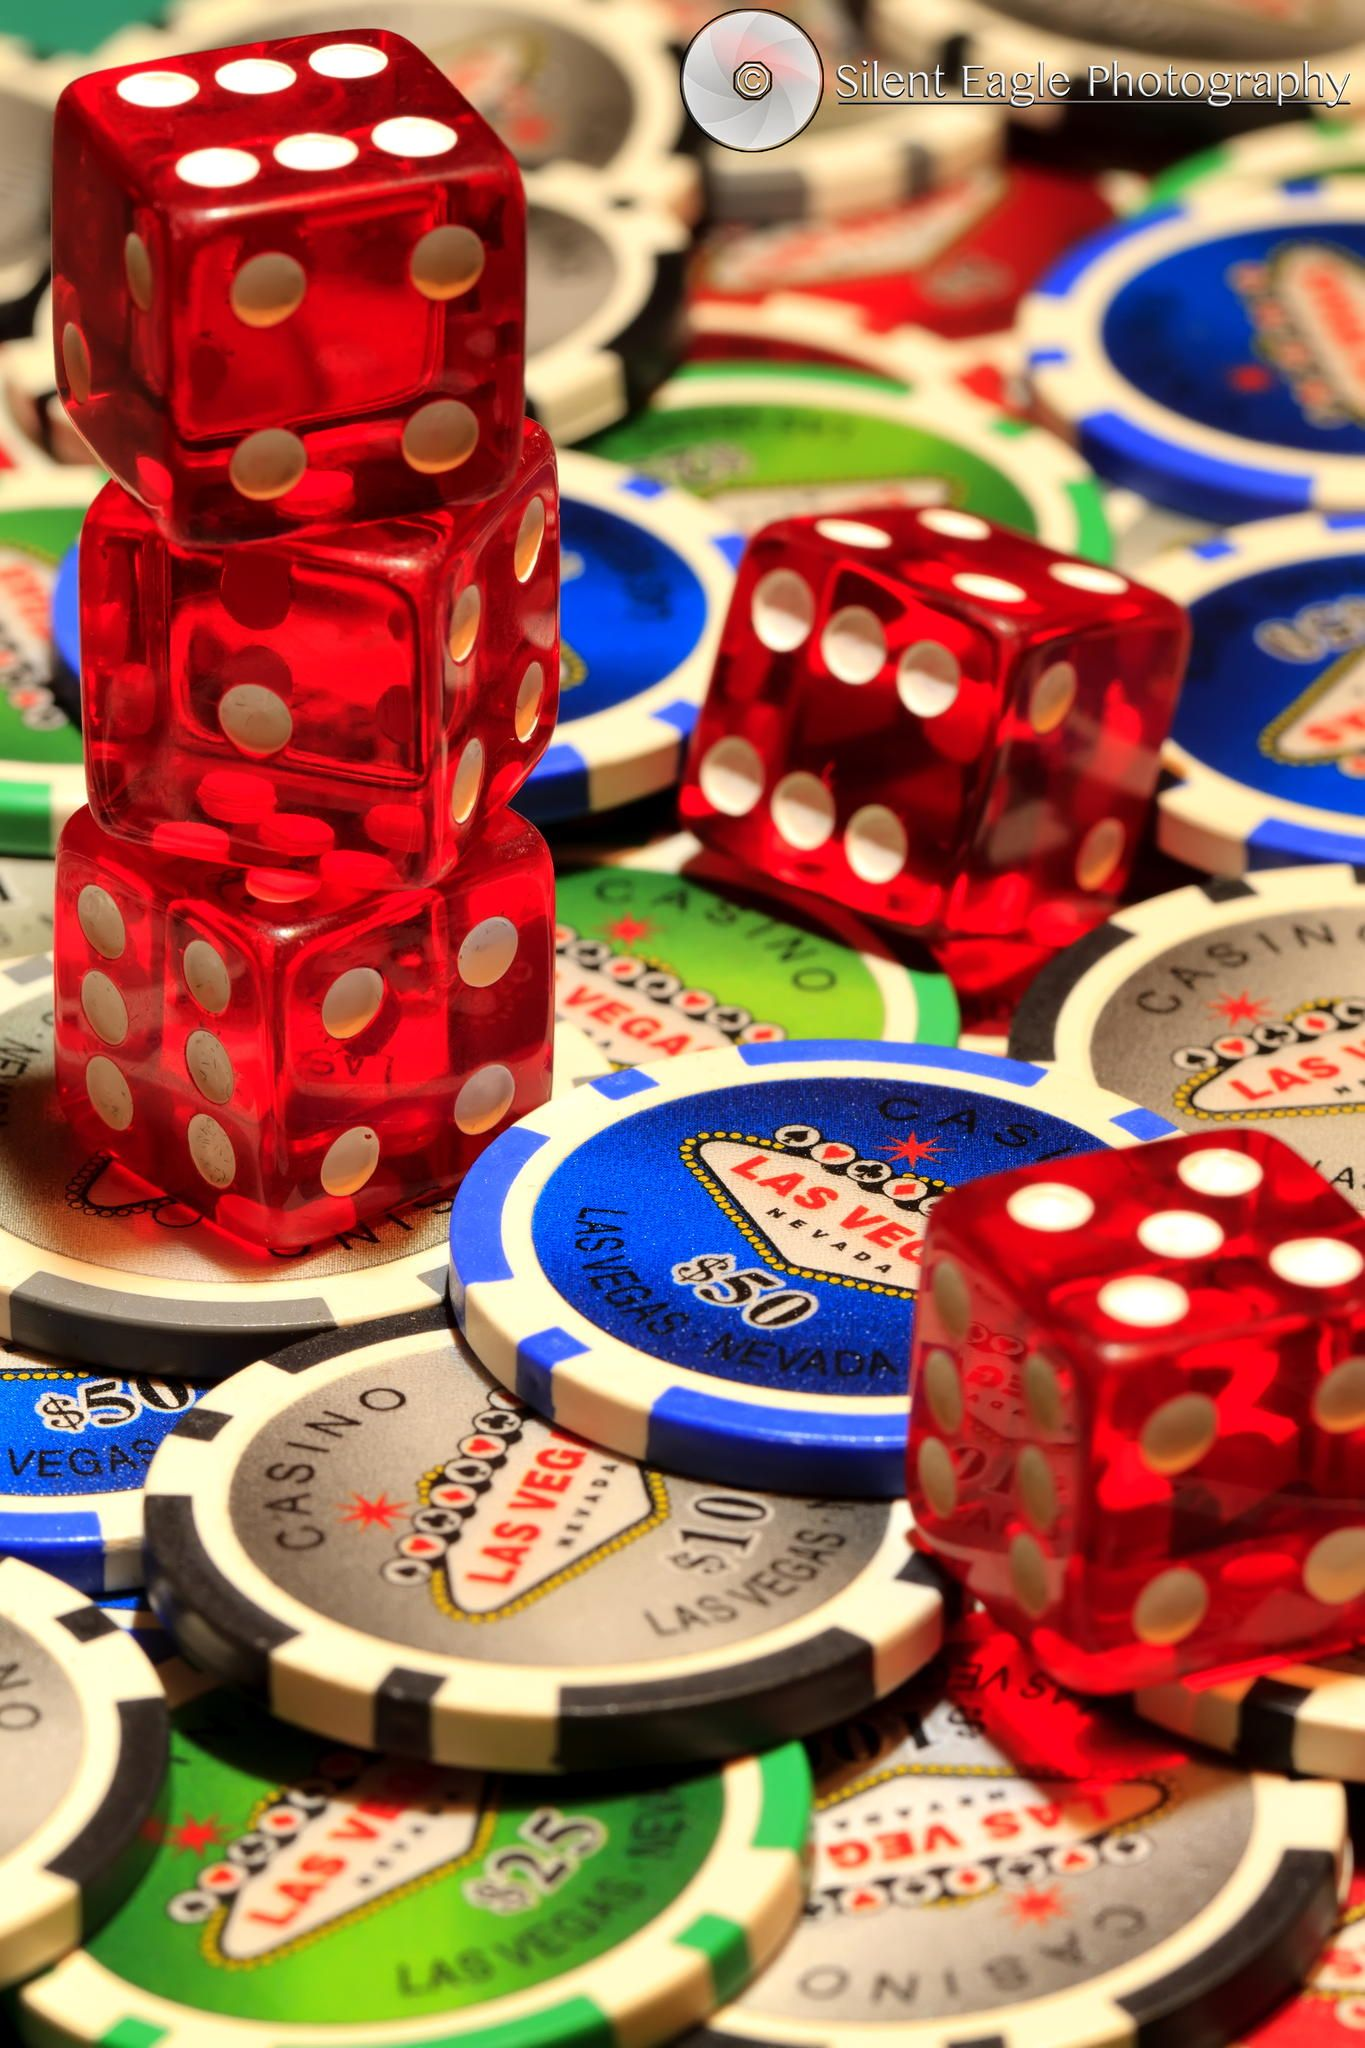 Recommended Casinos for USA Players